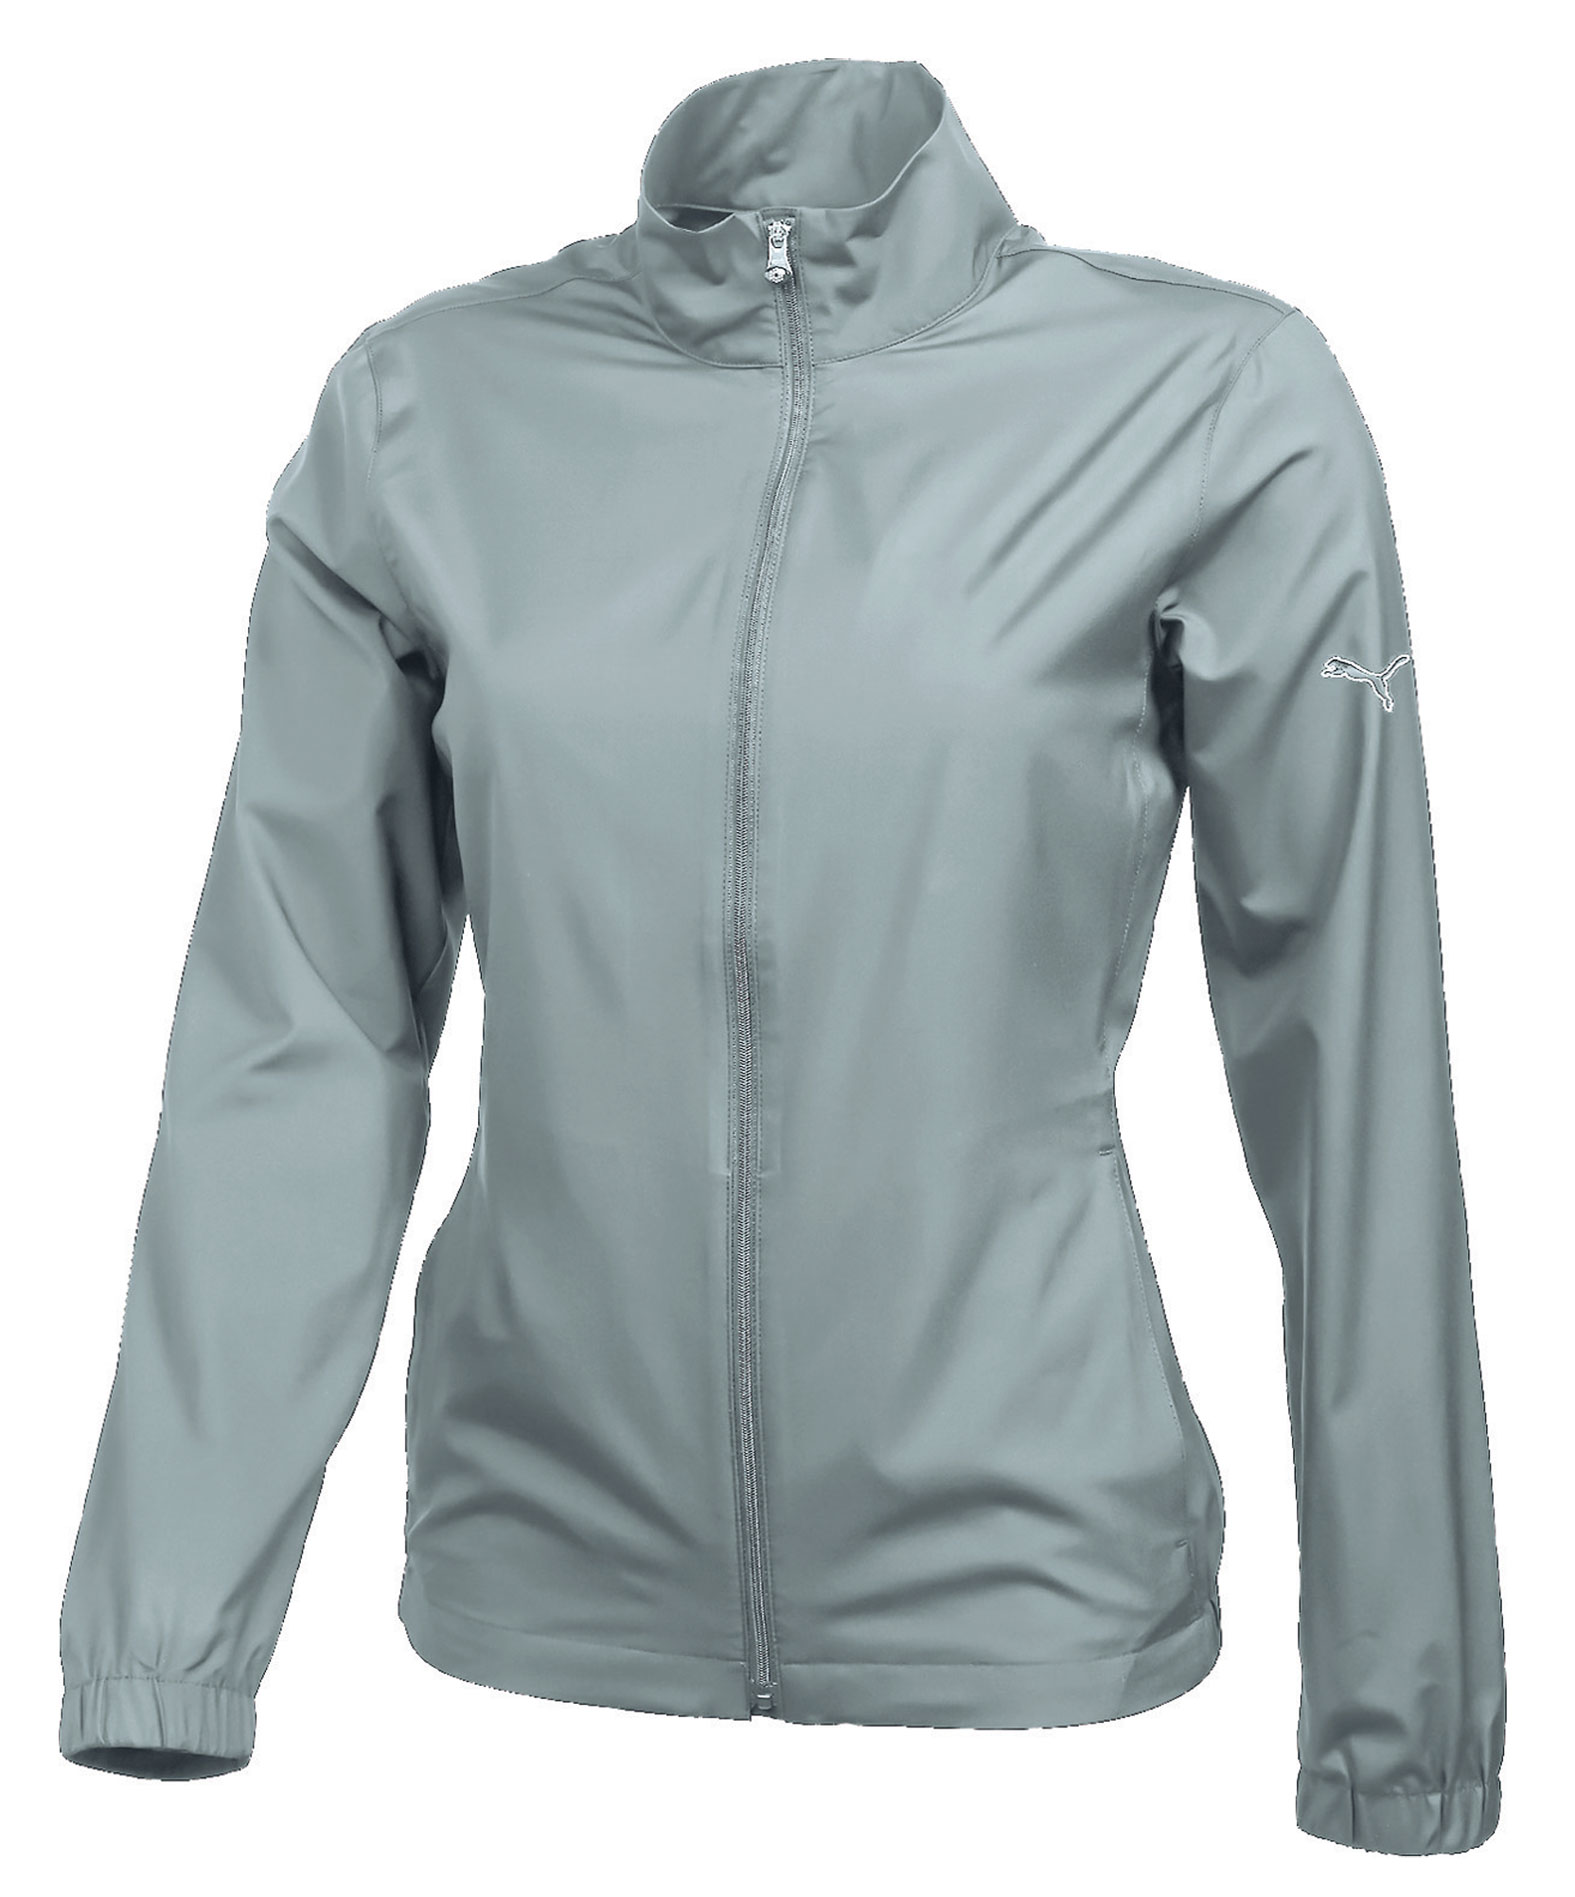 Puma Golf Womens Full Zip Wind Jacket